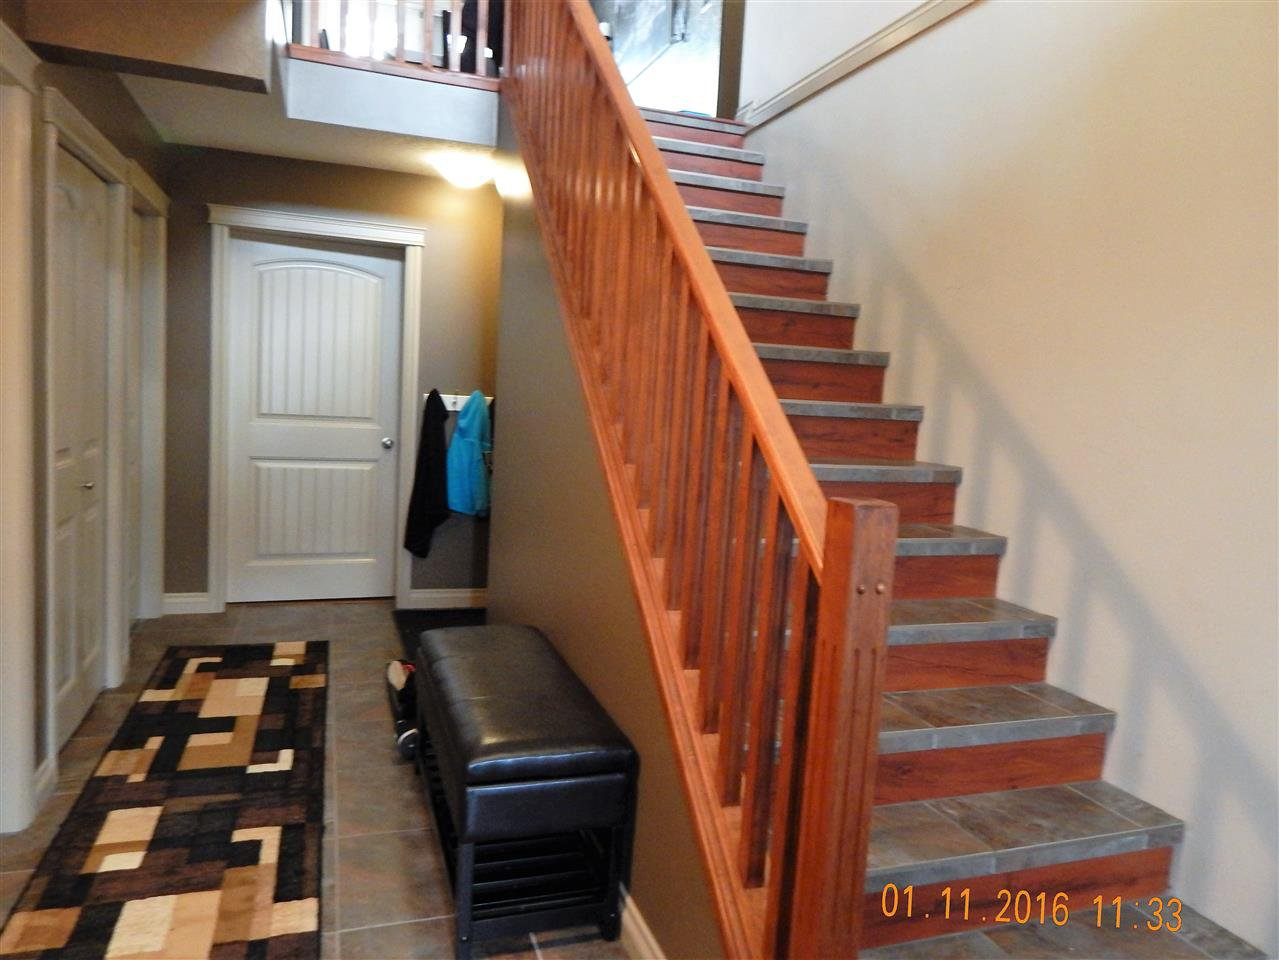 """Photo 2: Photos: 3685 CHARTWELL Avenue in Prince George: Lafreniere House for sale in """"WESTGATE-LAFRENIERE"""" (PG City South (Zone 74))  : MLS®# R2114089"""